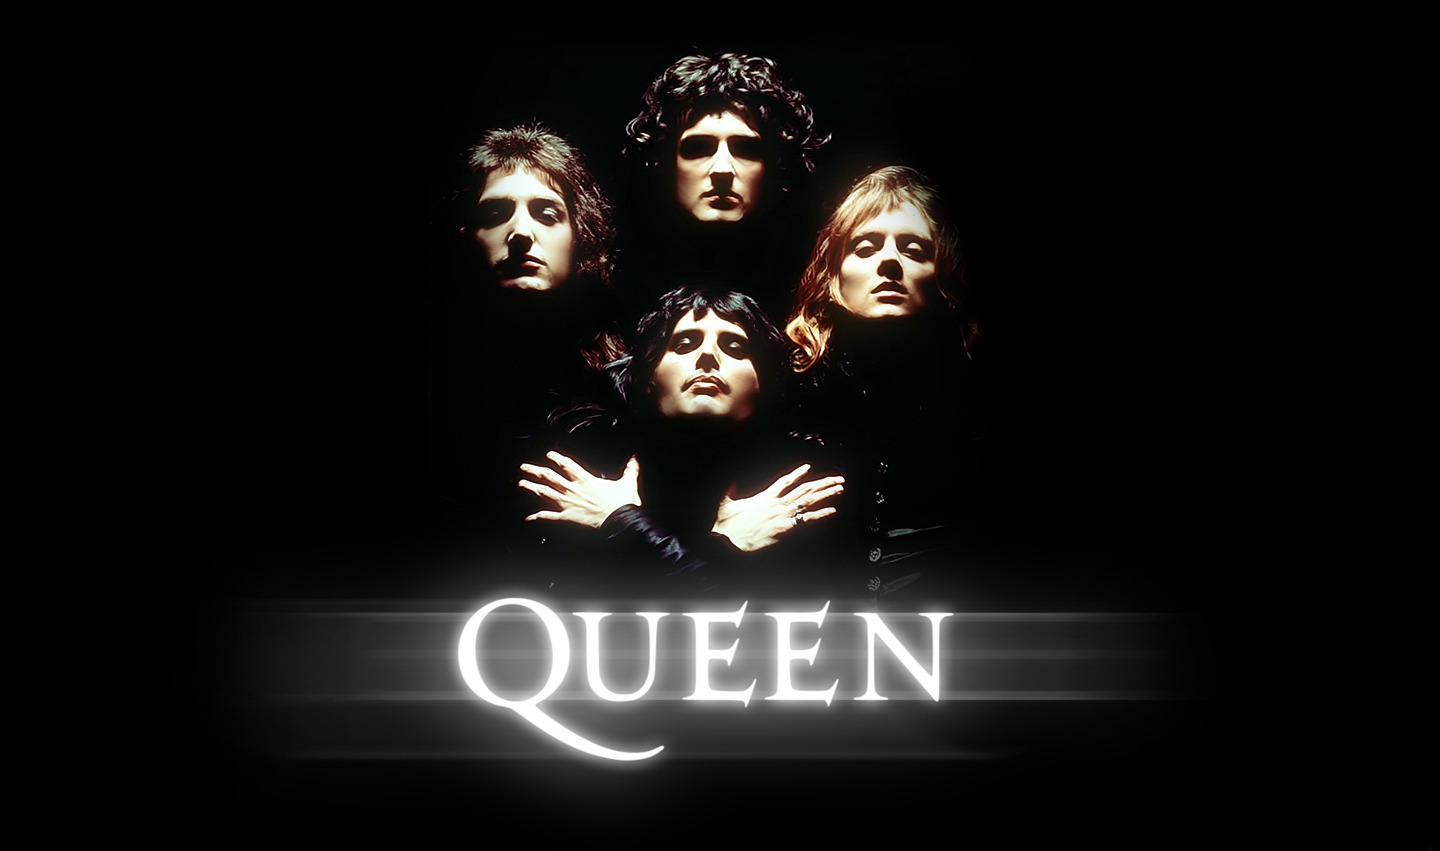 Top: canciones de Queen